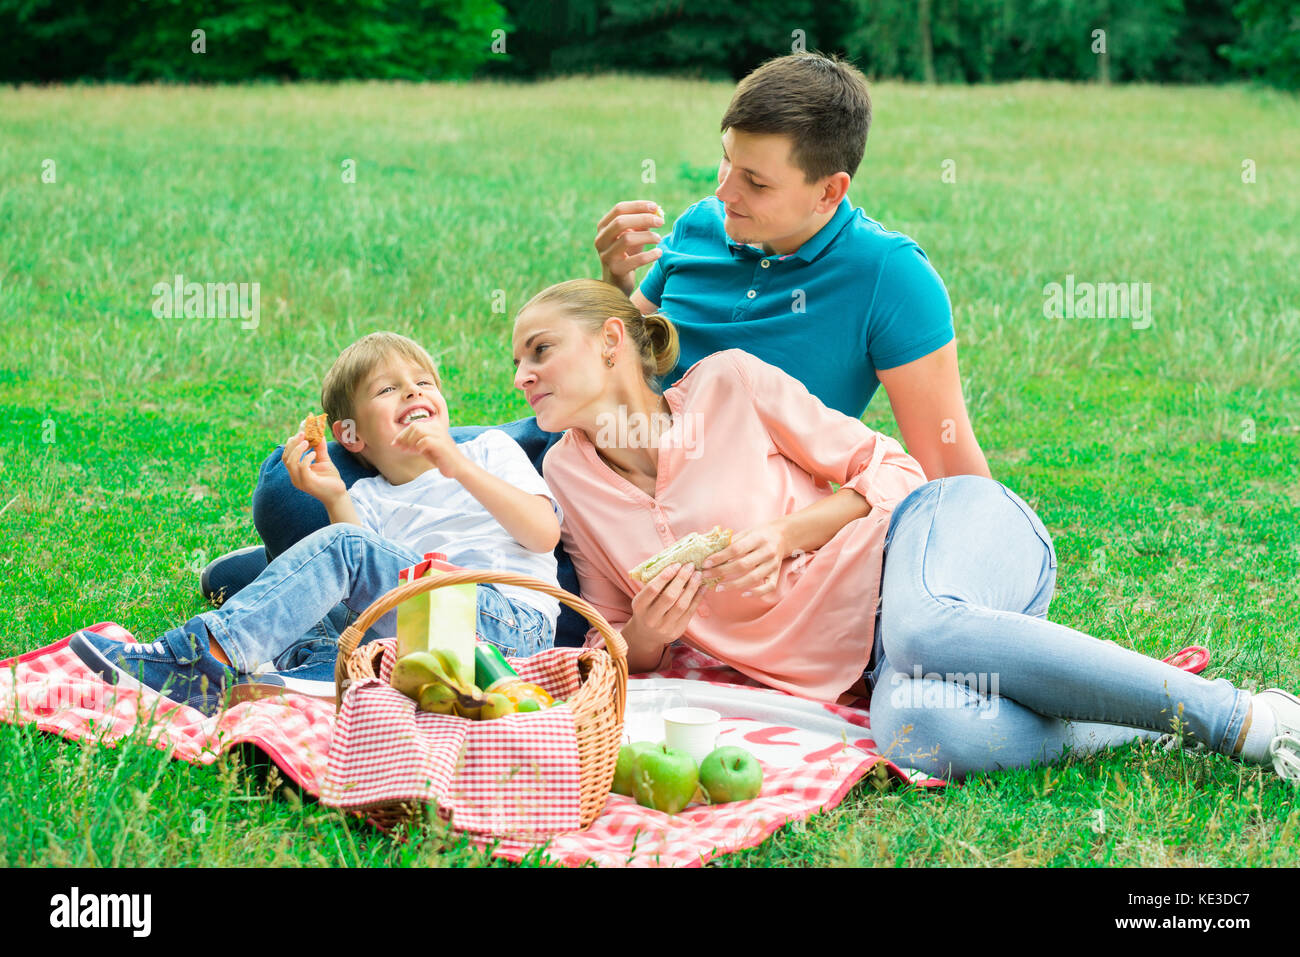 Family Healthy Eating Outside Stock Photos Amp Family